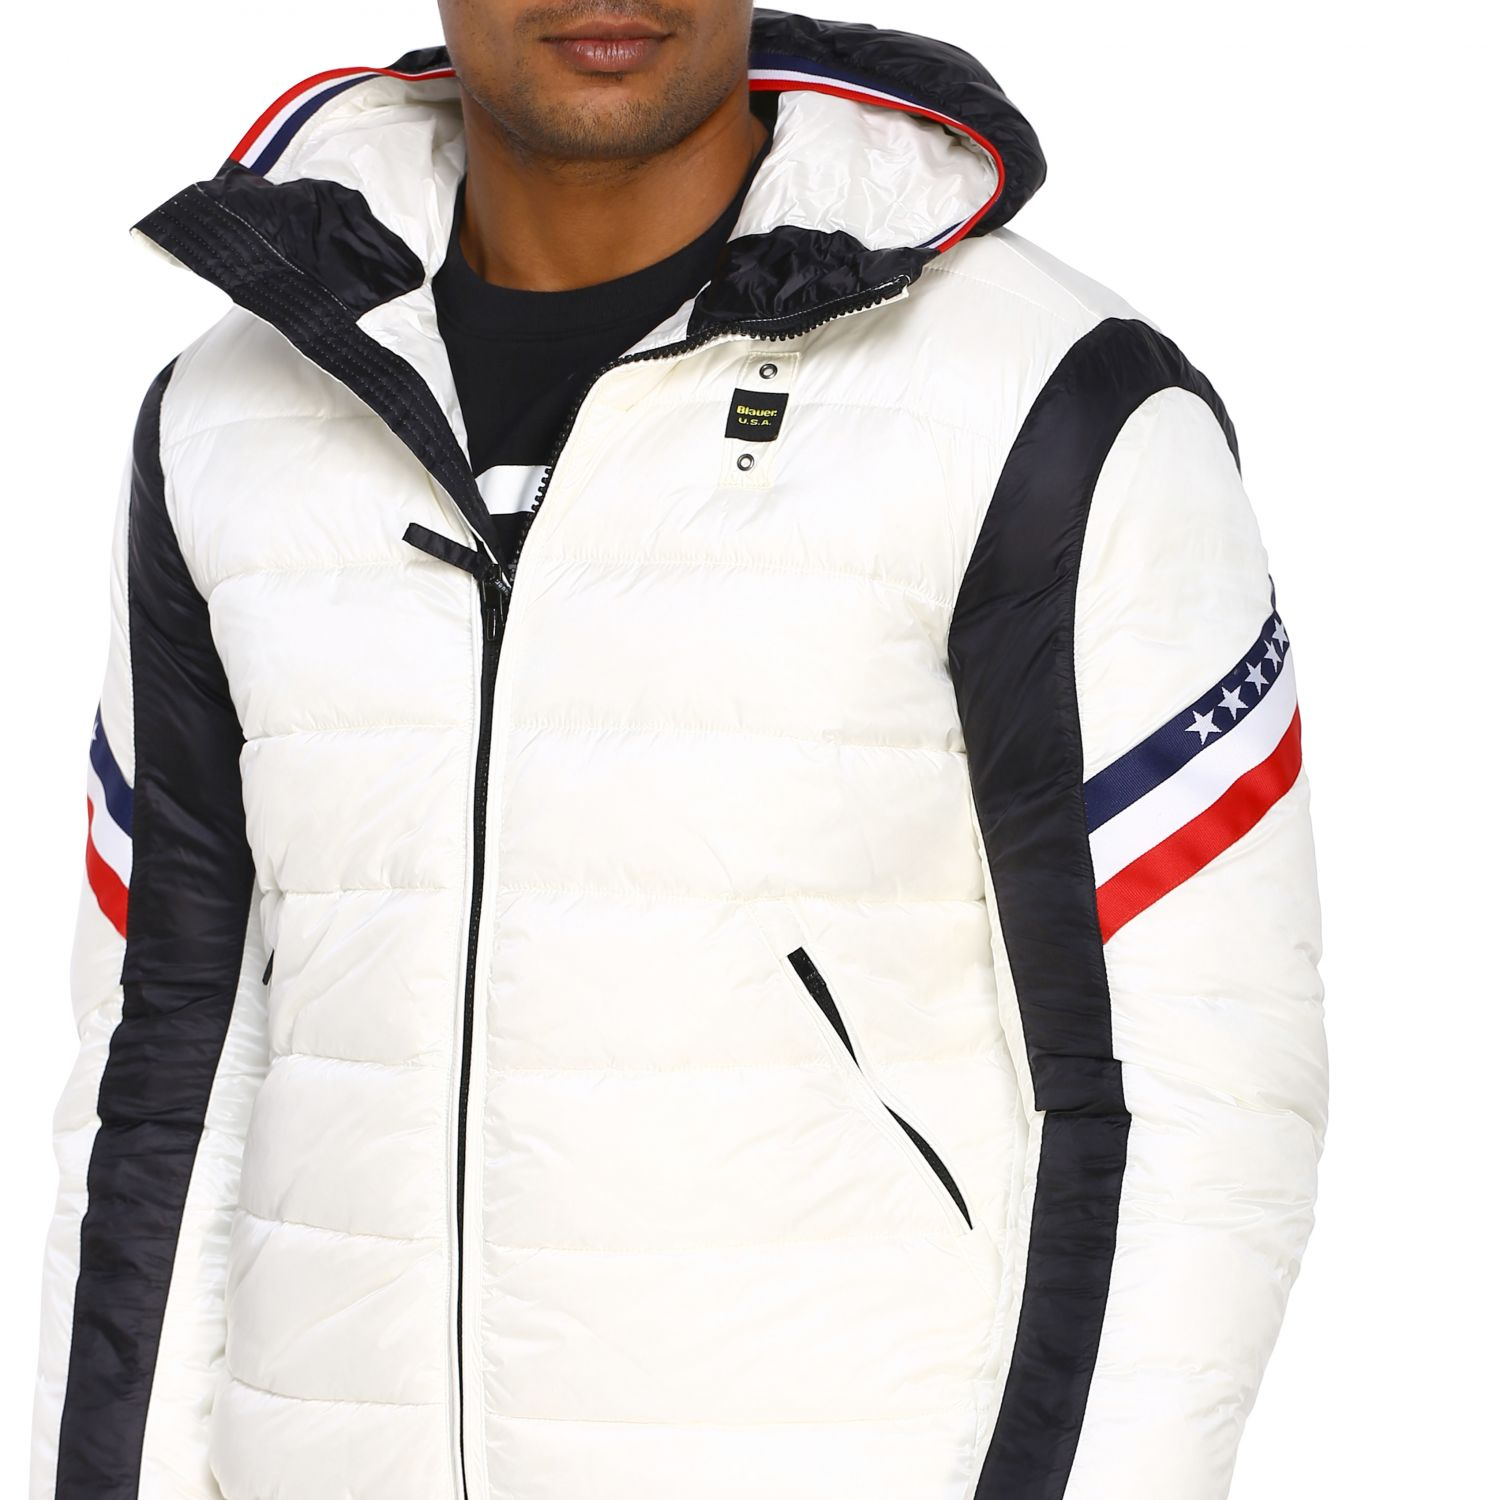 Jacket men Blauer white 5